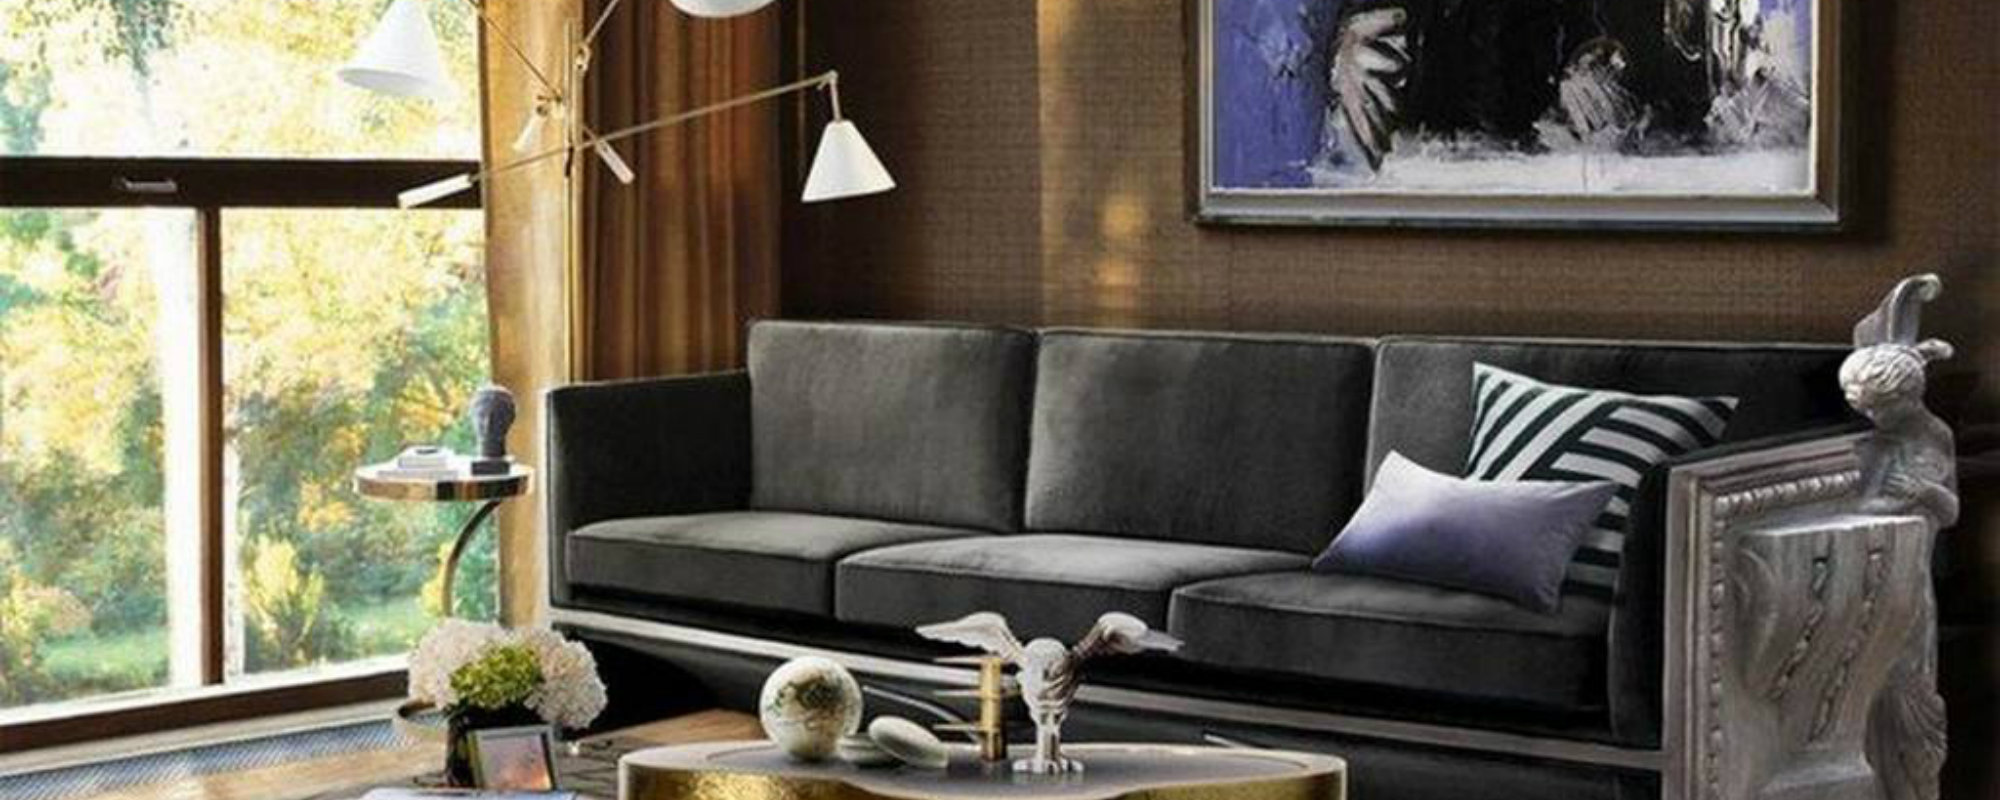 Ideas para Decorar: Los Sofás contemporâneos más perfectos ideas para decorar Ideas para Decorar: Los Sofás contemporâneos más perfectos Featured1